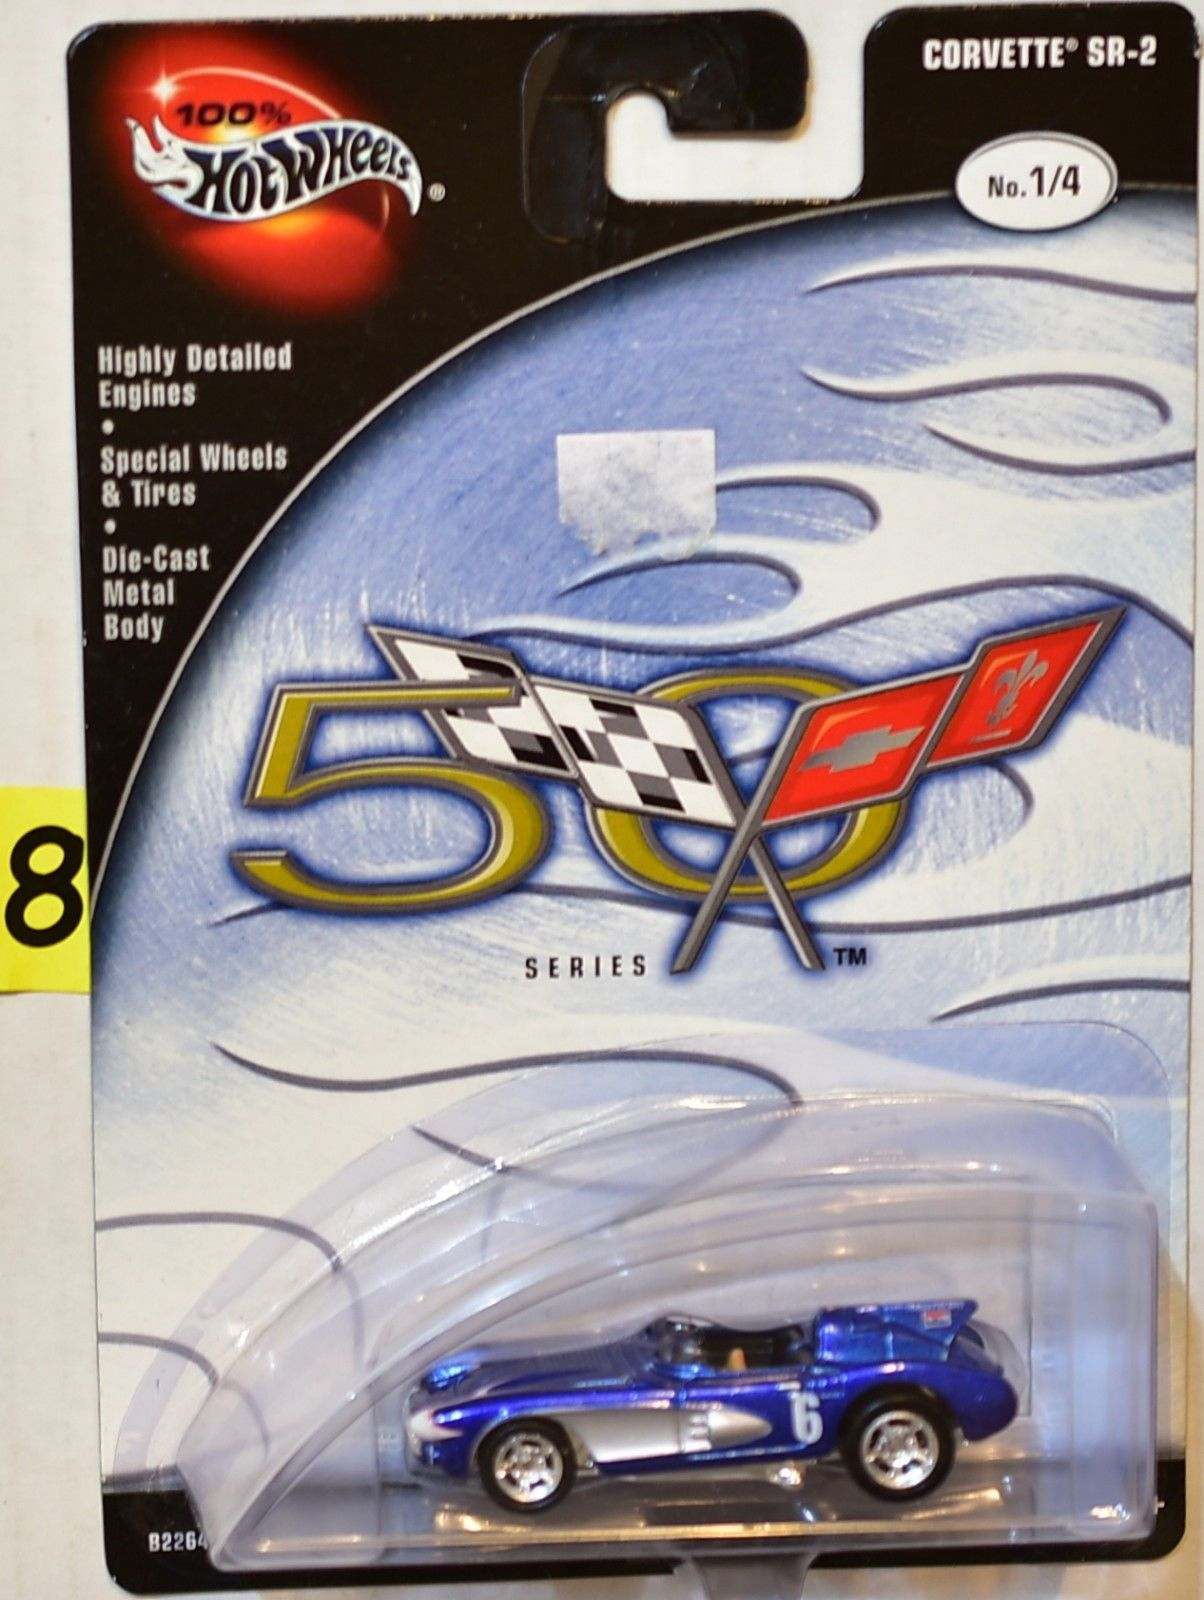 100% HOT WHEELS 50TH ANNIVERSARY SERIES CORVETTE SR-2 BLUE